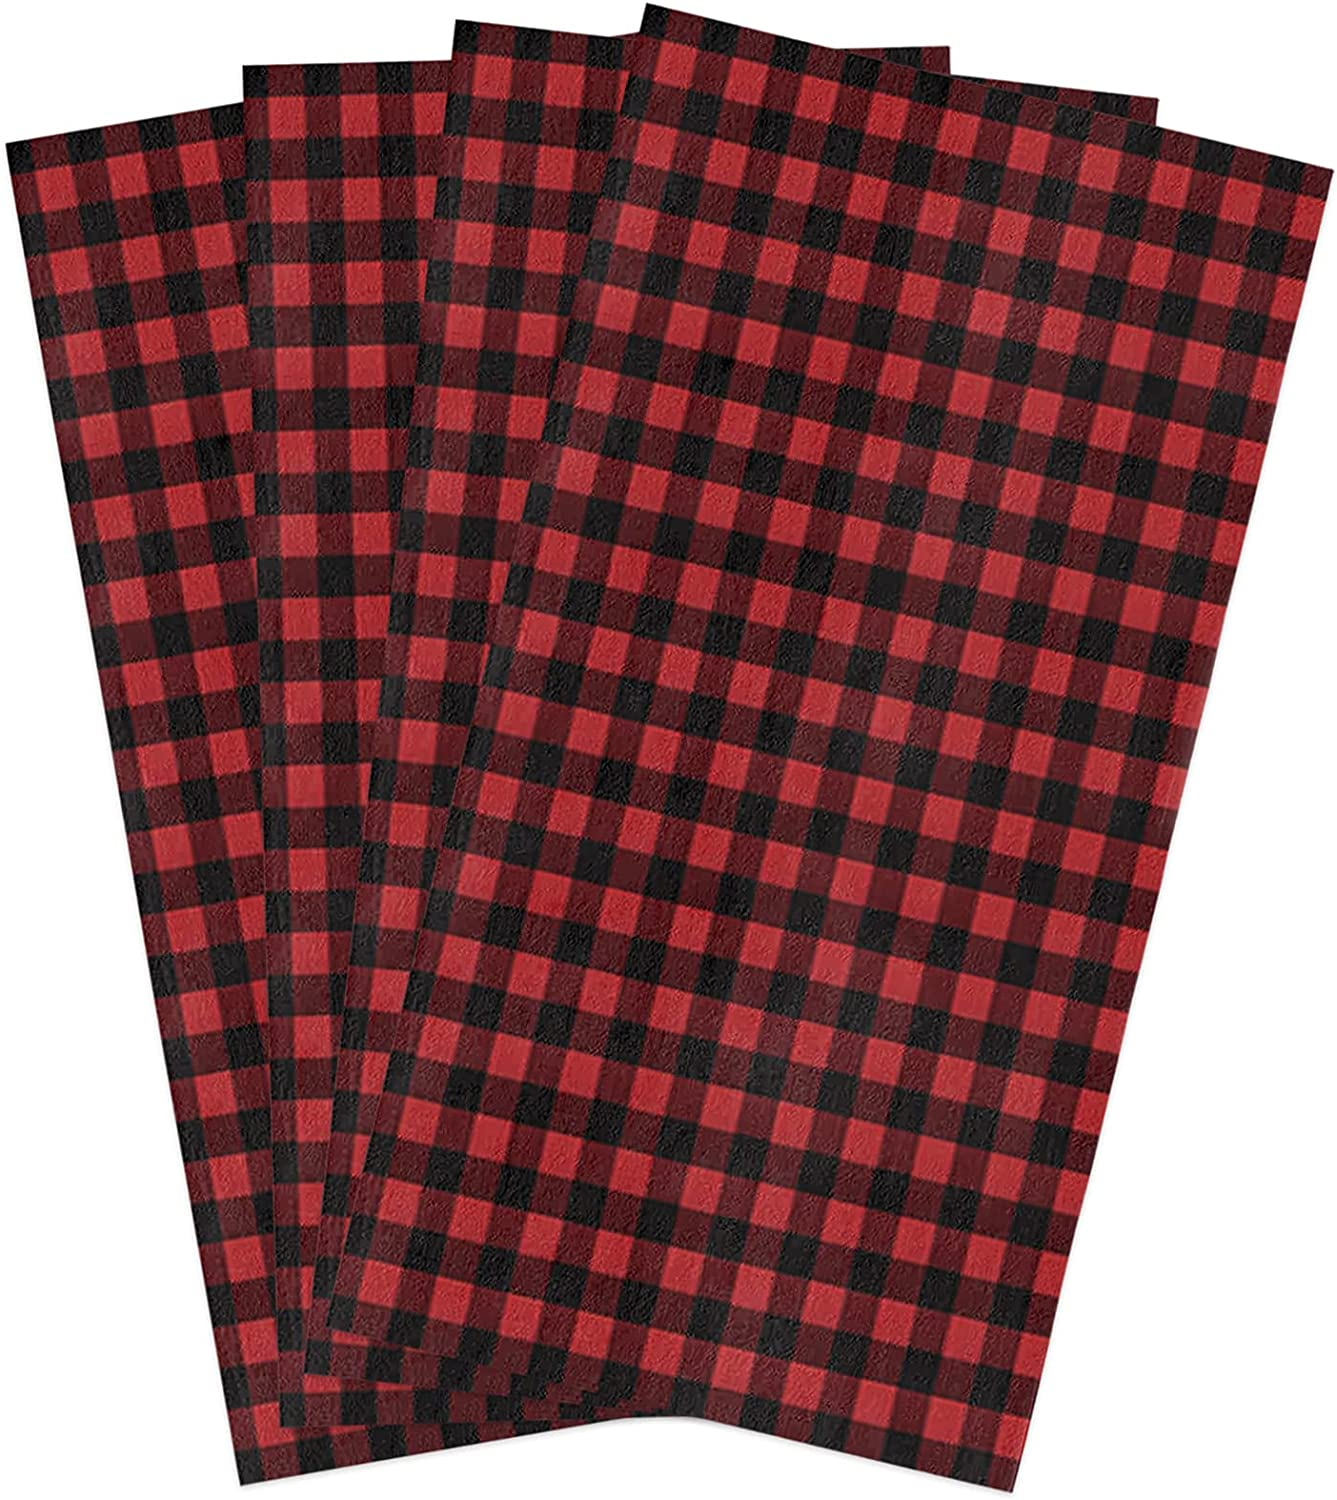 Limited time cheap sale GladiDroom sale 4 Pack Absorbent Kitchen Rustic Black Towels Dish Red